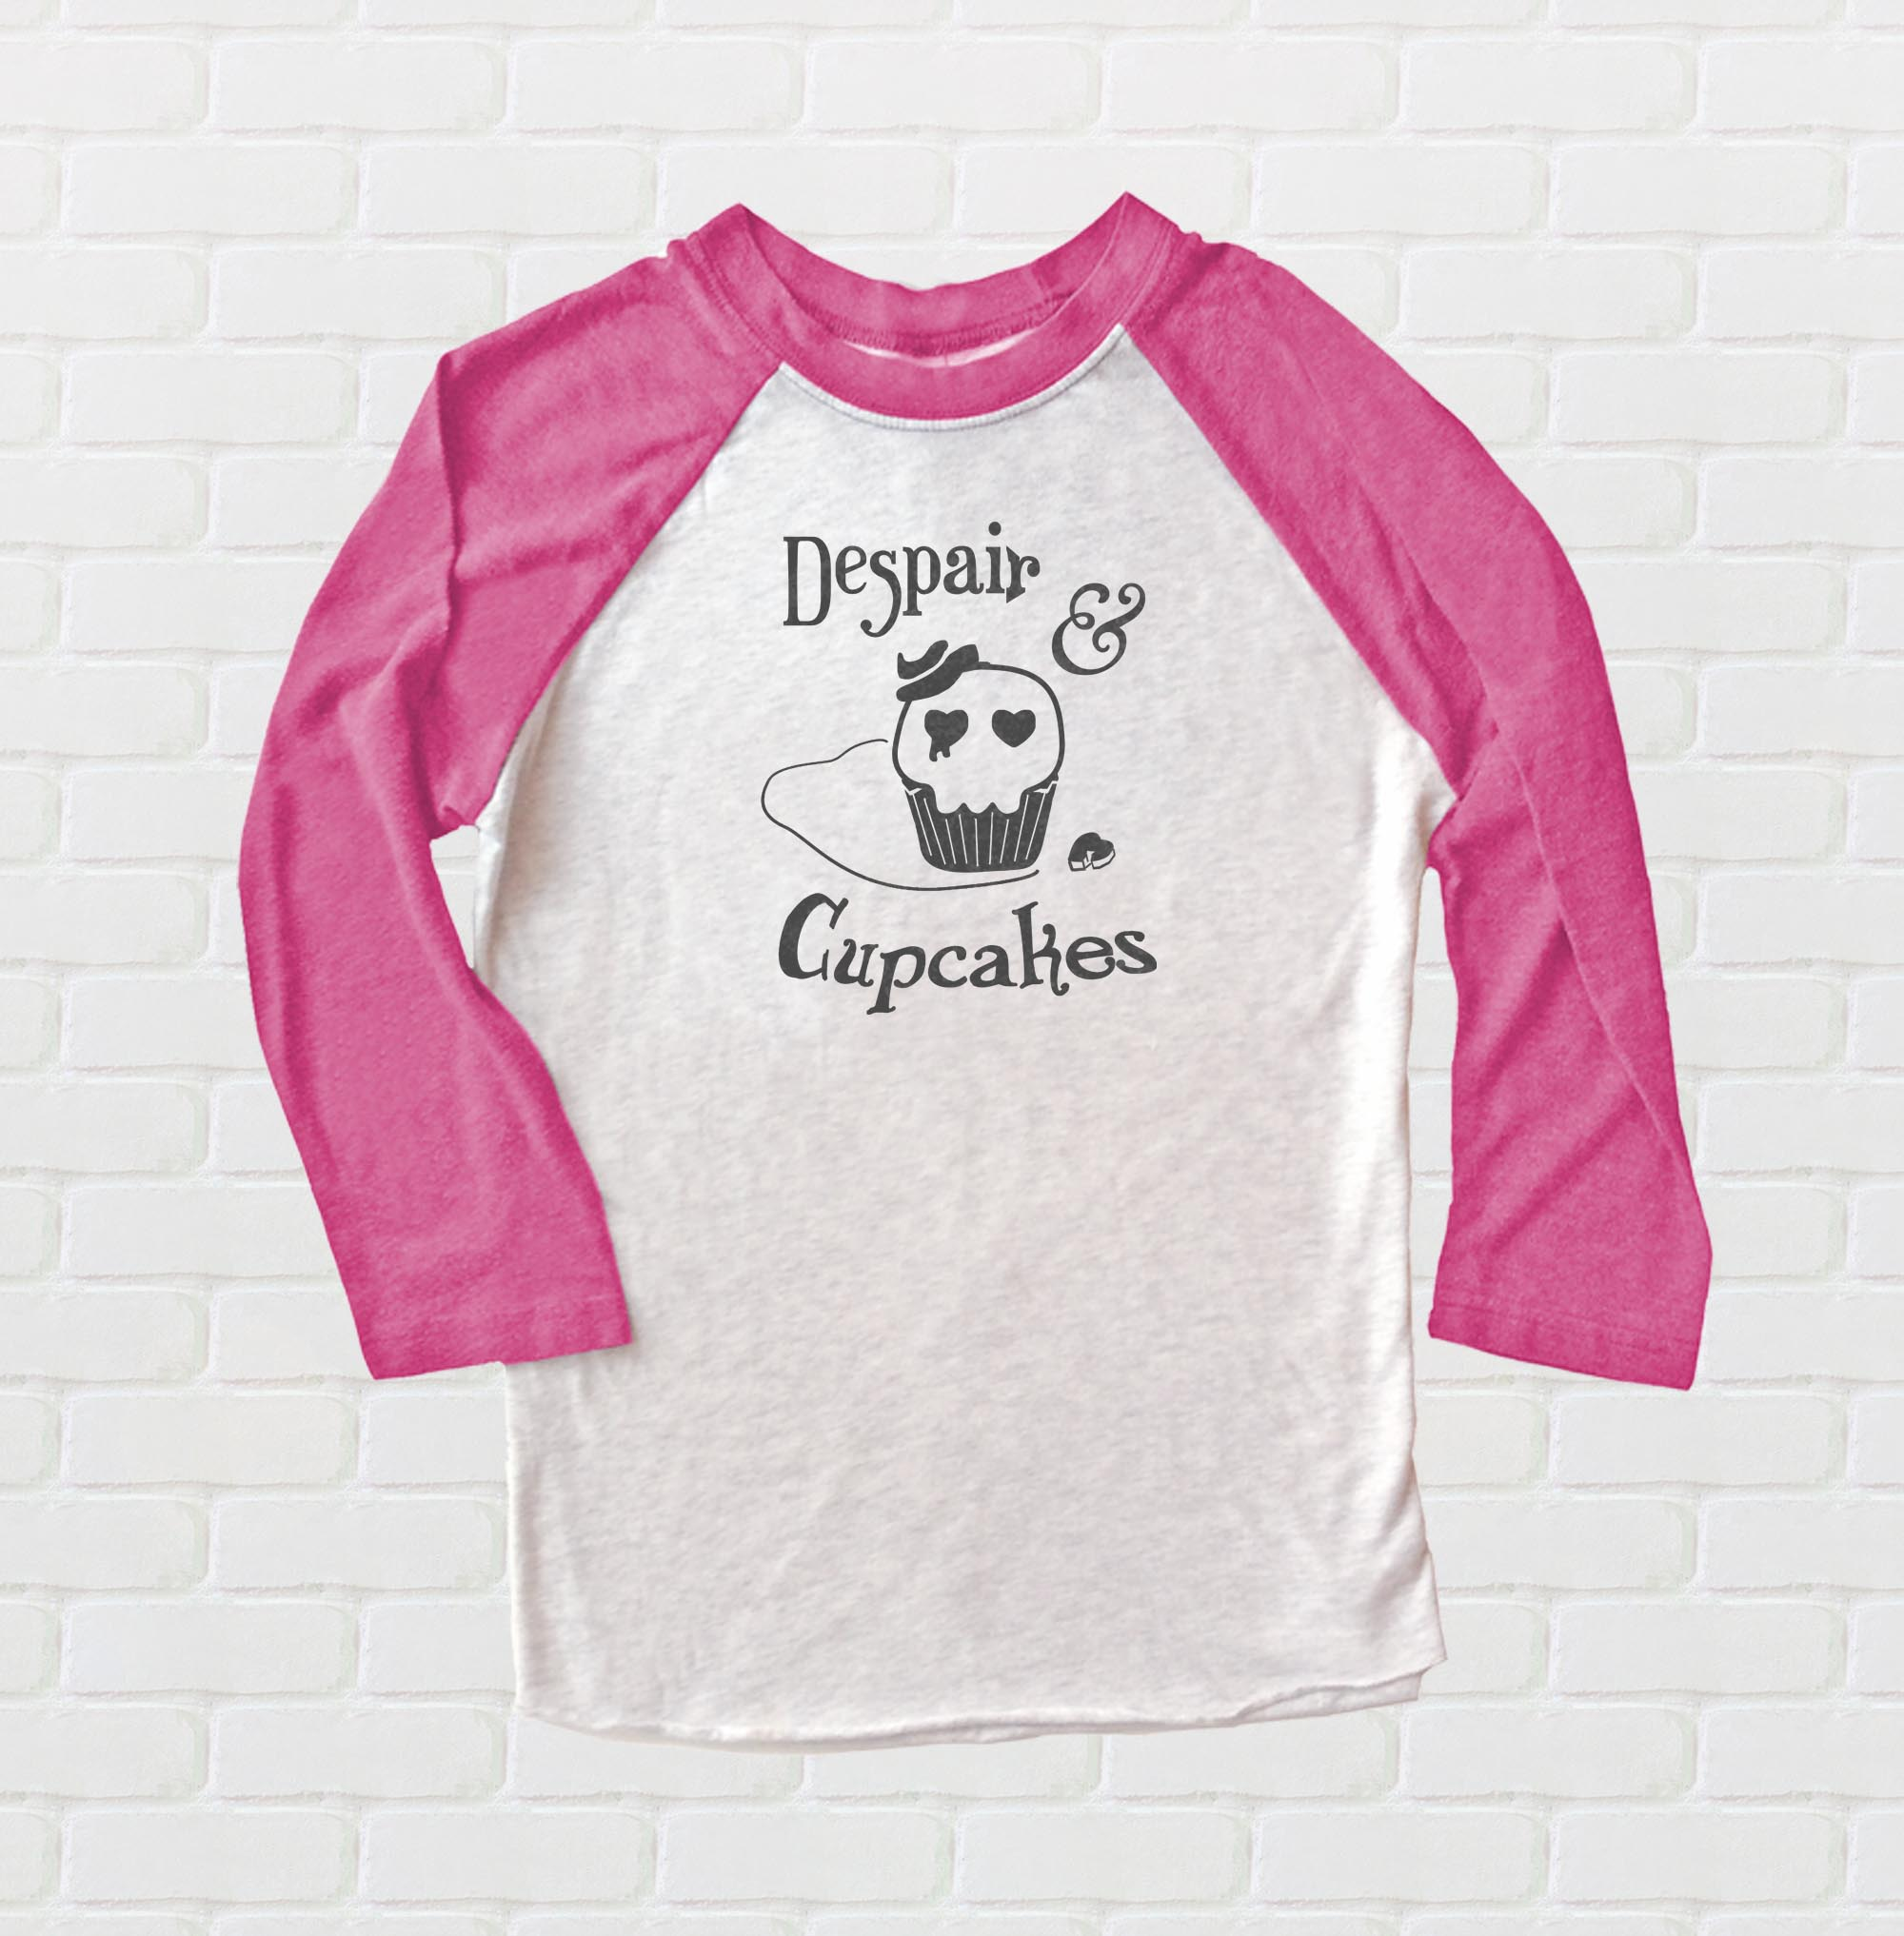 Despair and Cupcakes Raglan T-shirt 3/4 Sleeve - Pink/White